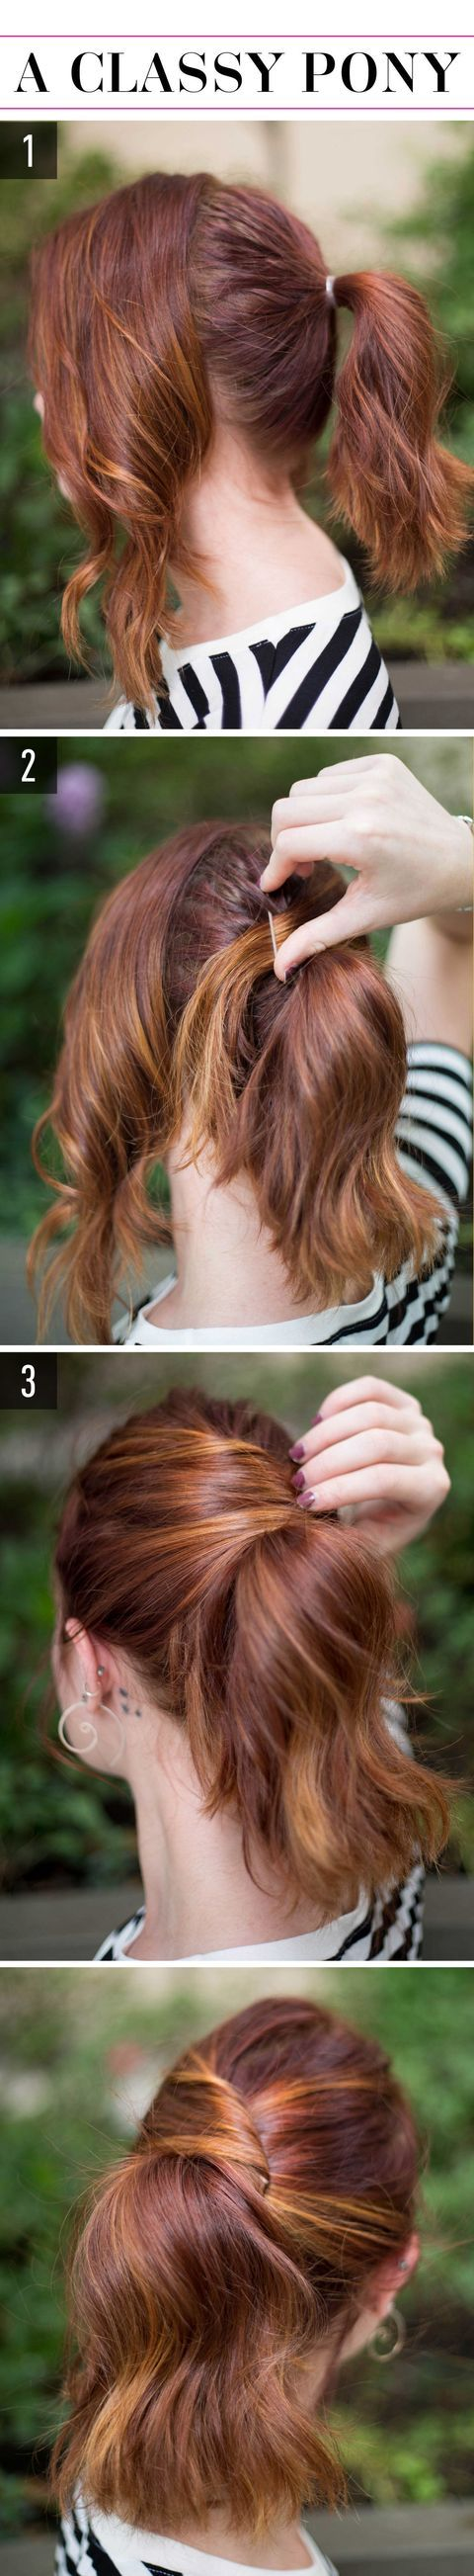 15 Super-Easy Hairstyles for Lazy Girls Who Cant Even